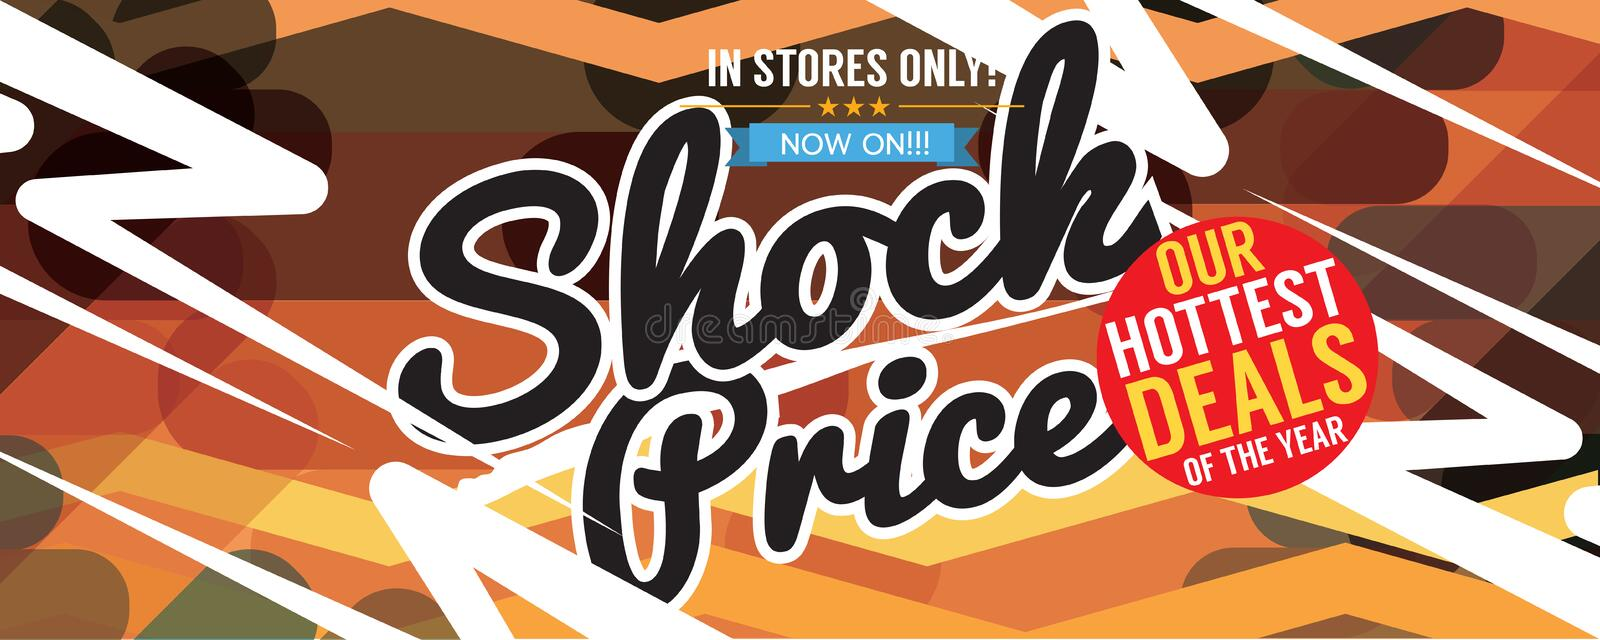 Shock Sale Multicolored Promotional 8310x3326 px Wide Banner stock illustration